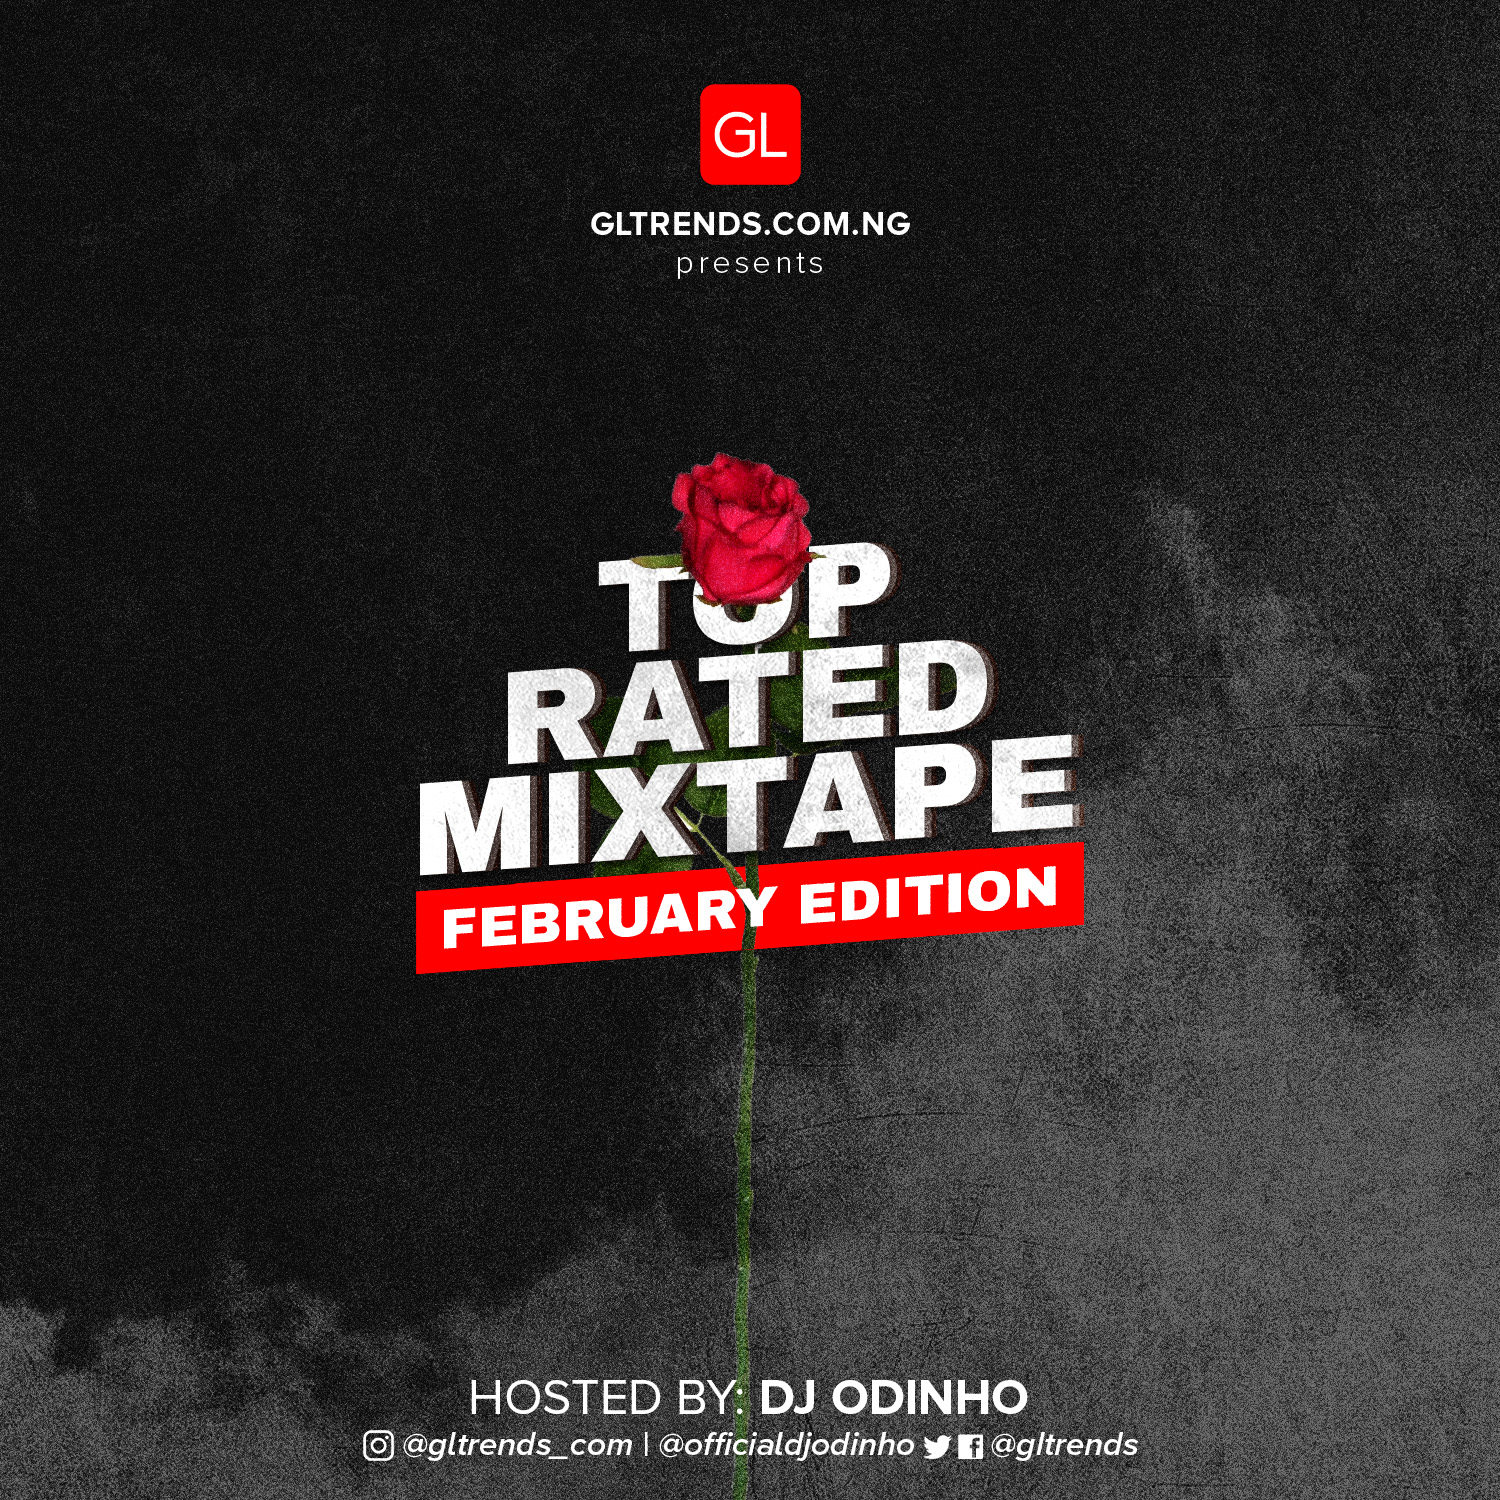 GLtrends Top Rated Mixtape February 2019 Edition